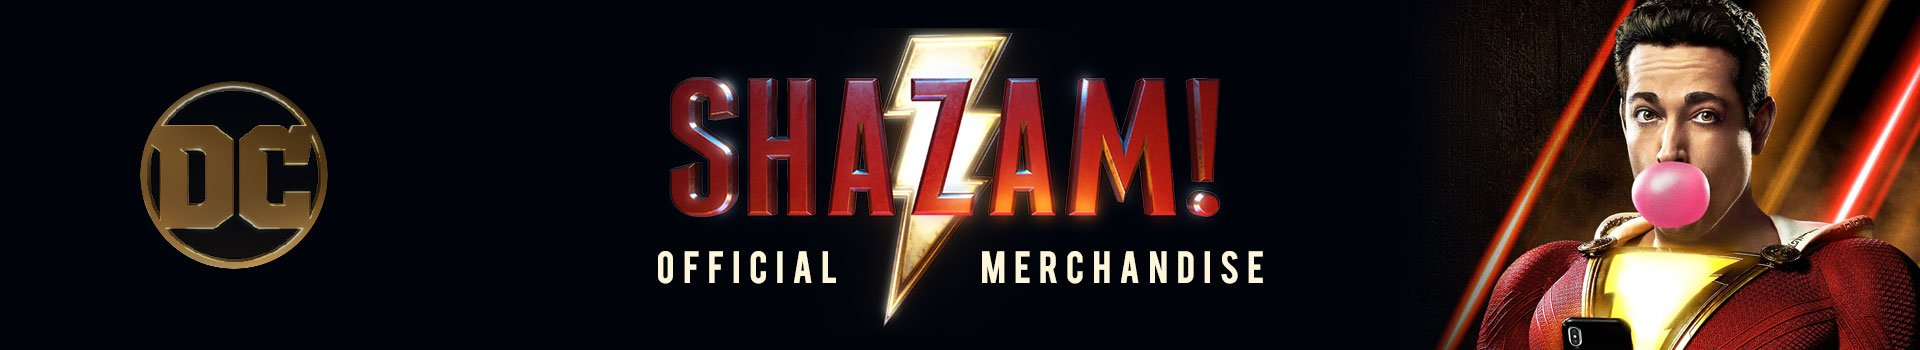 Shazam - Official Merchandise